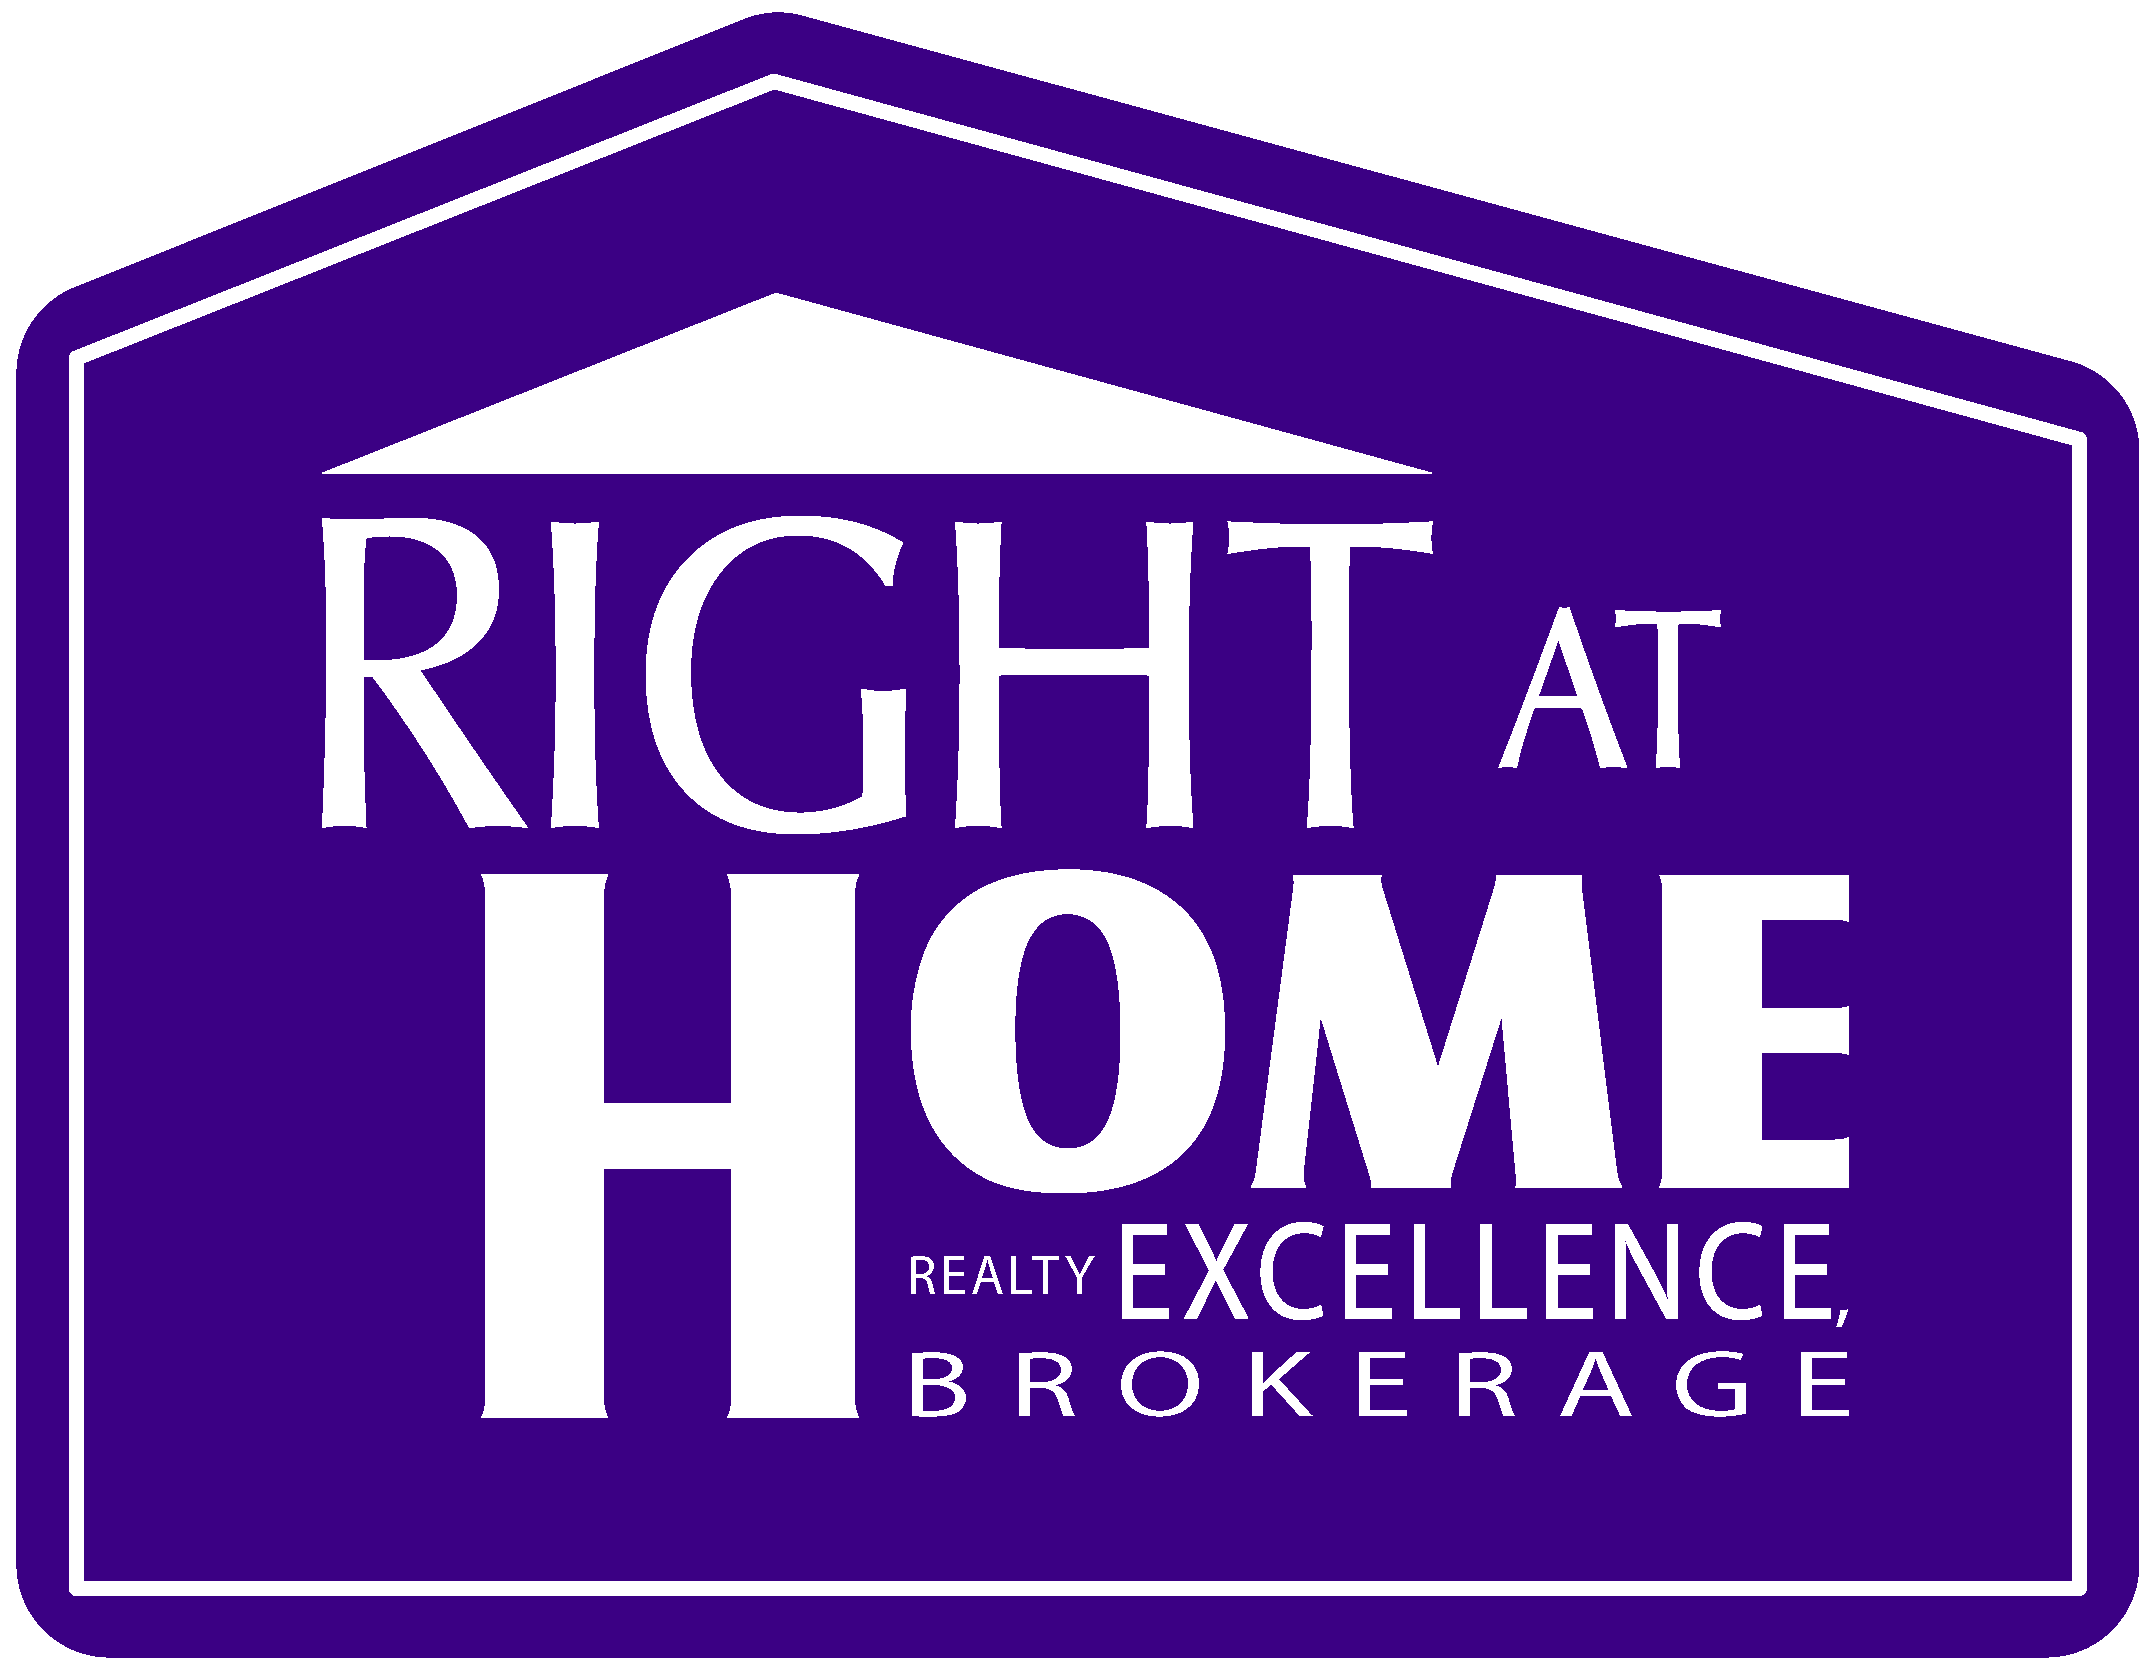 Right At Home Realty Excellence Brokerage*